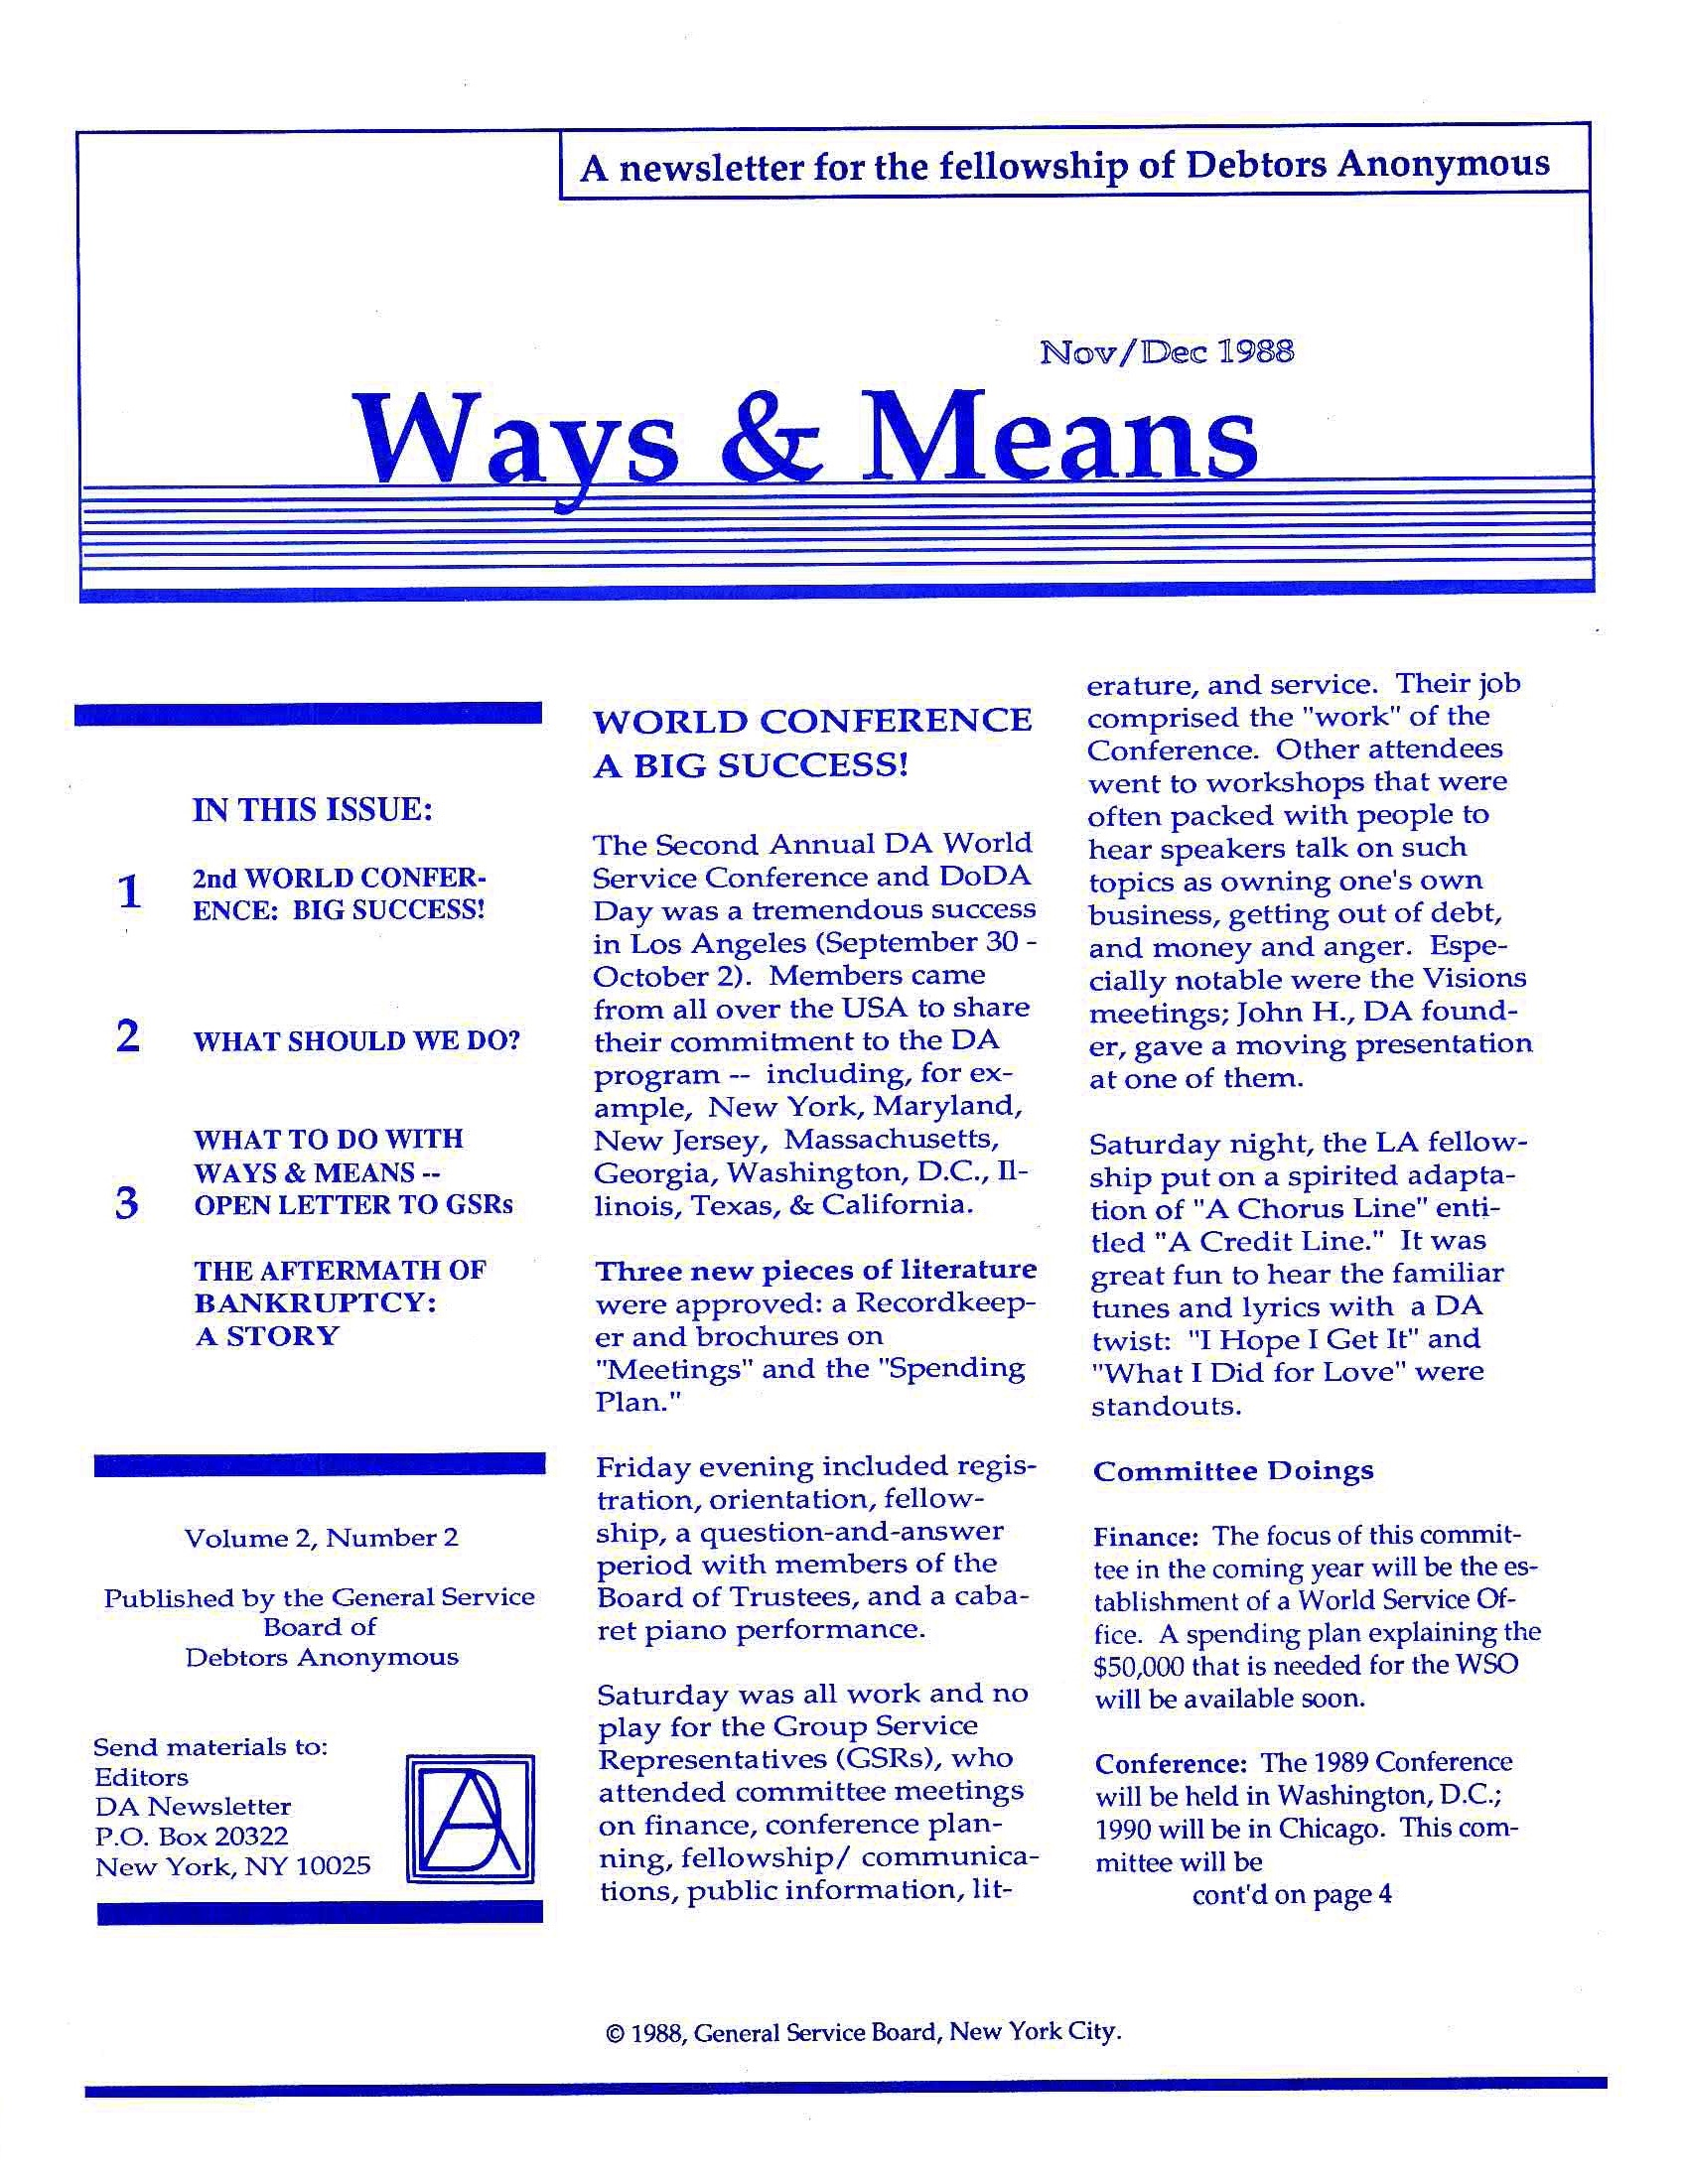 Ways & Means 4th QTR 1988